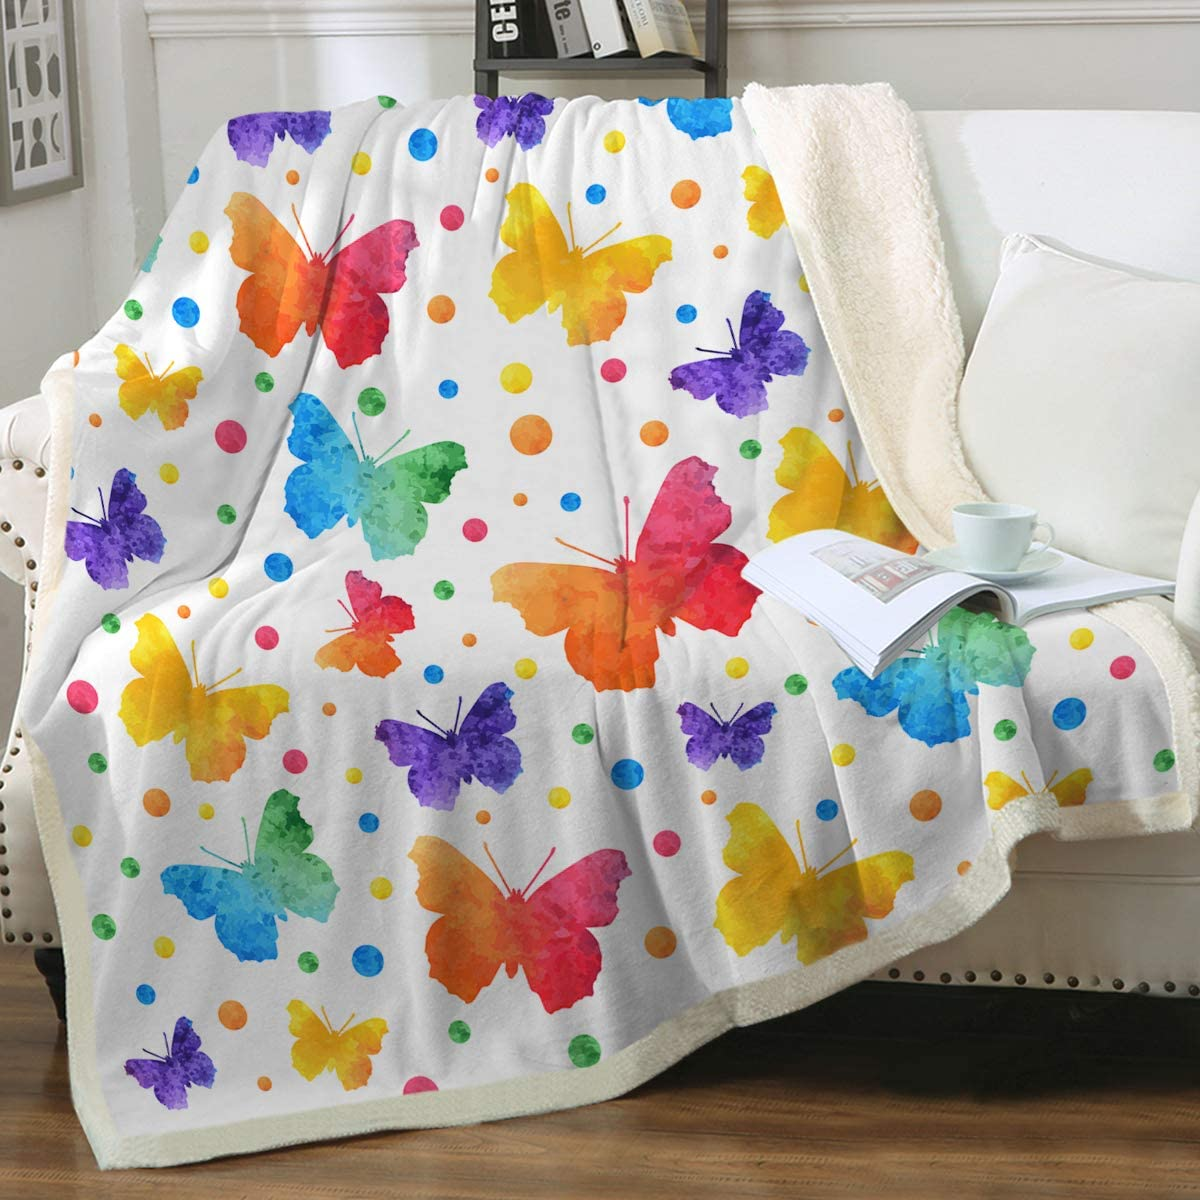 Sleepwish Colorful Butterfly Sherpa Fleece Max 71% OFF online shopping Throw for Kid Blanket